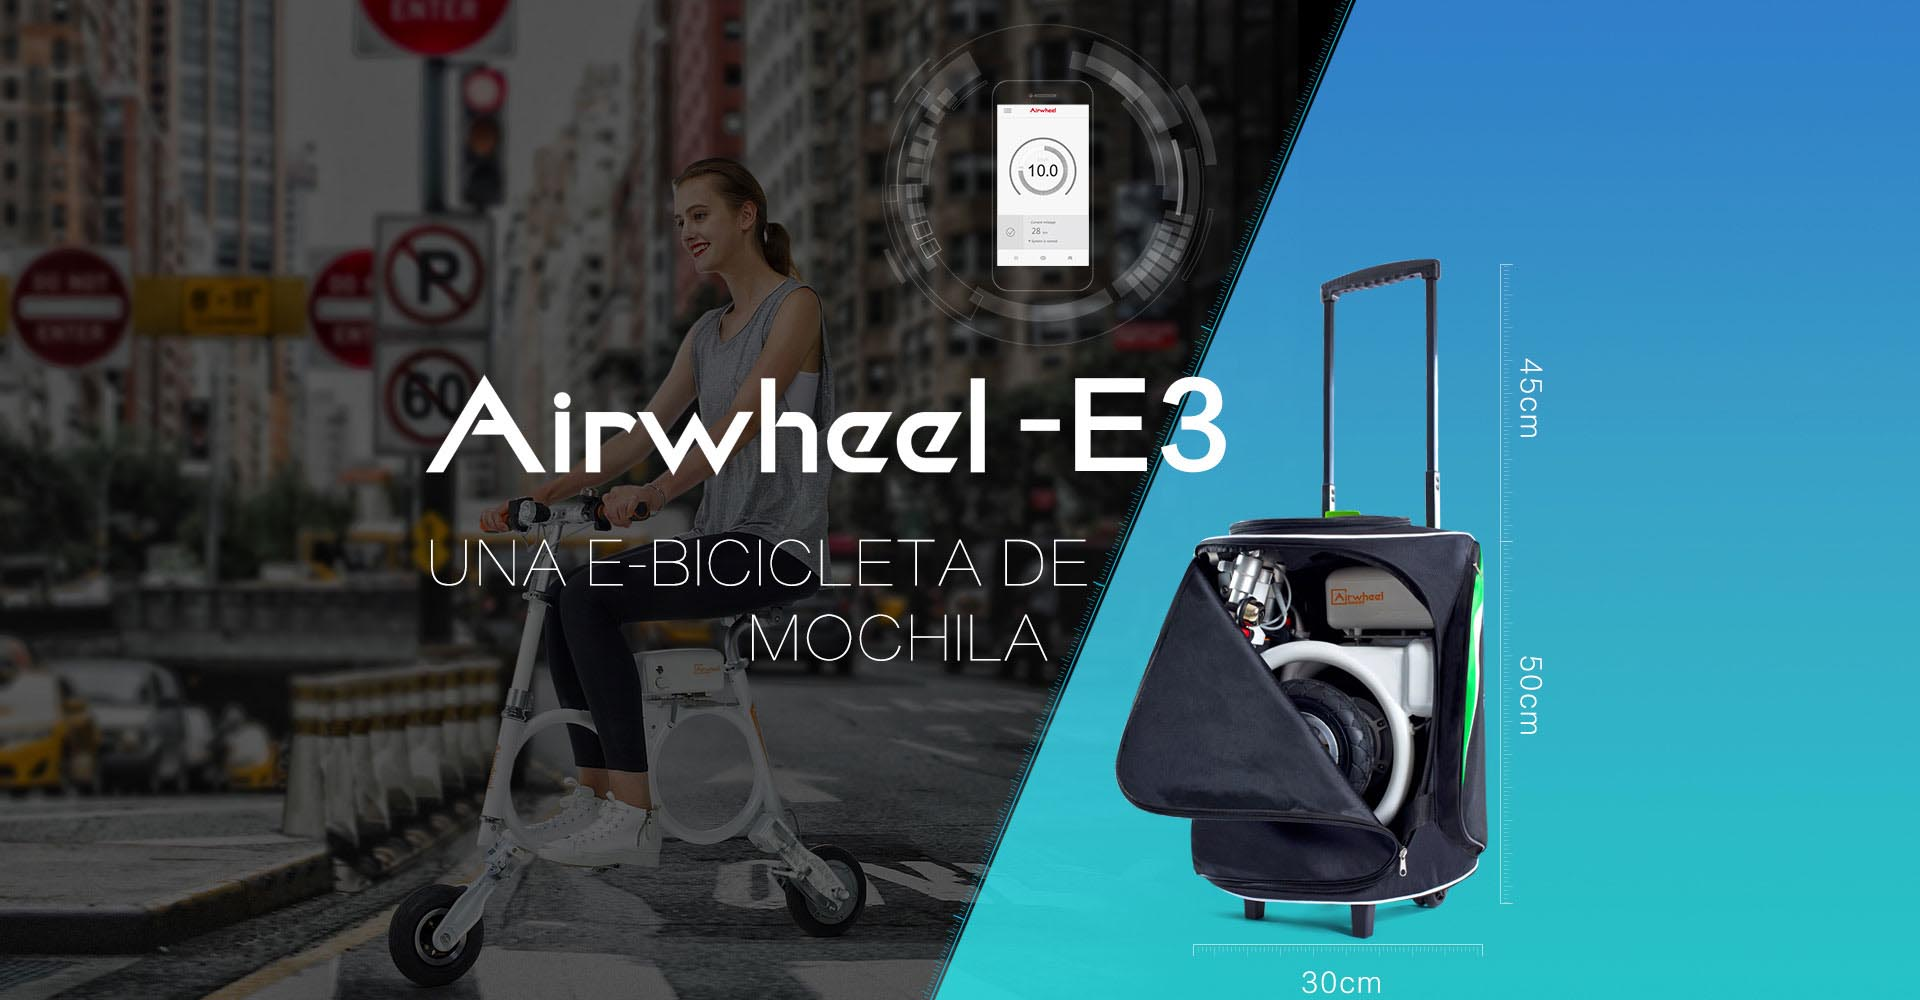 airwheel-E3